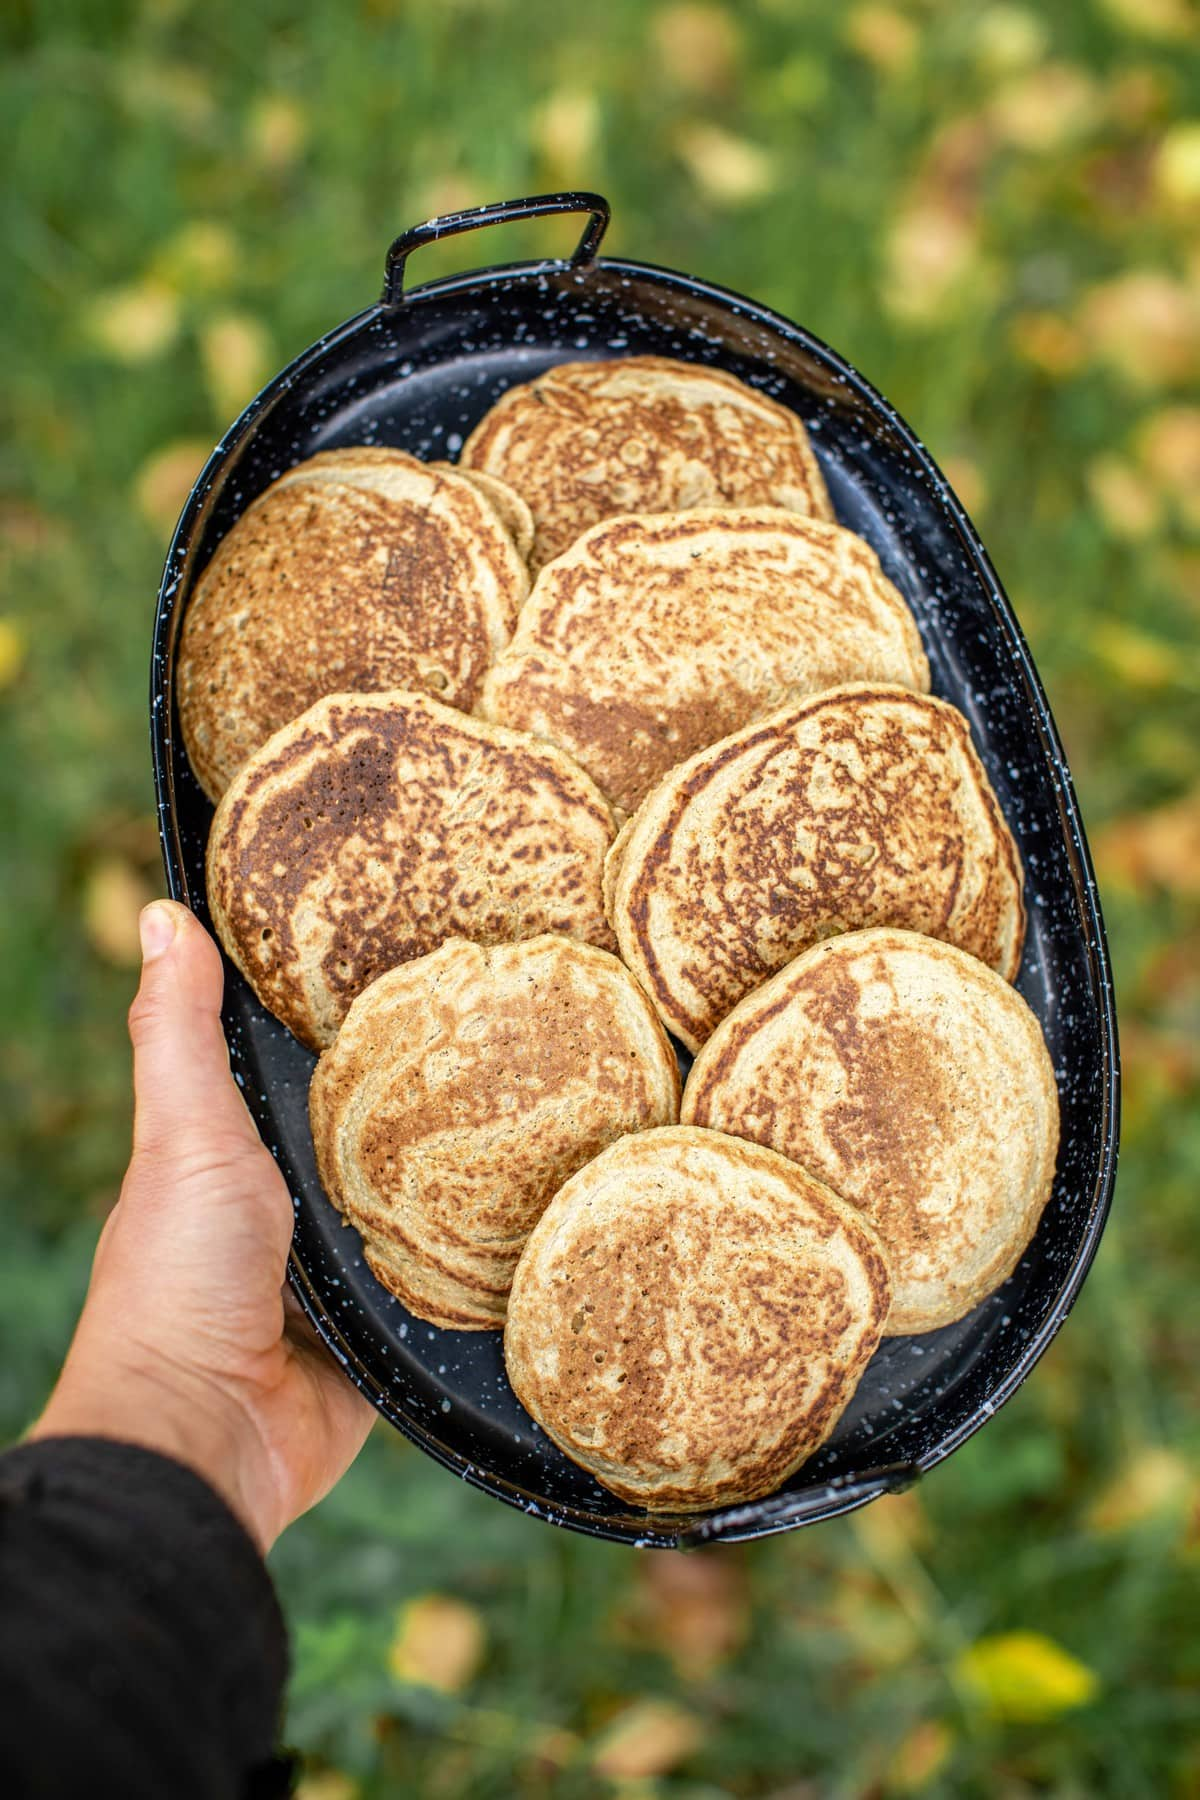 hand holding black aluminum tray of cooked vegan pancakes in grassy field